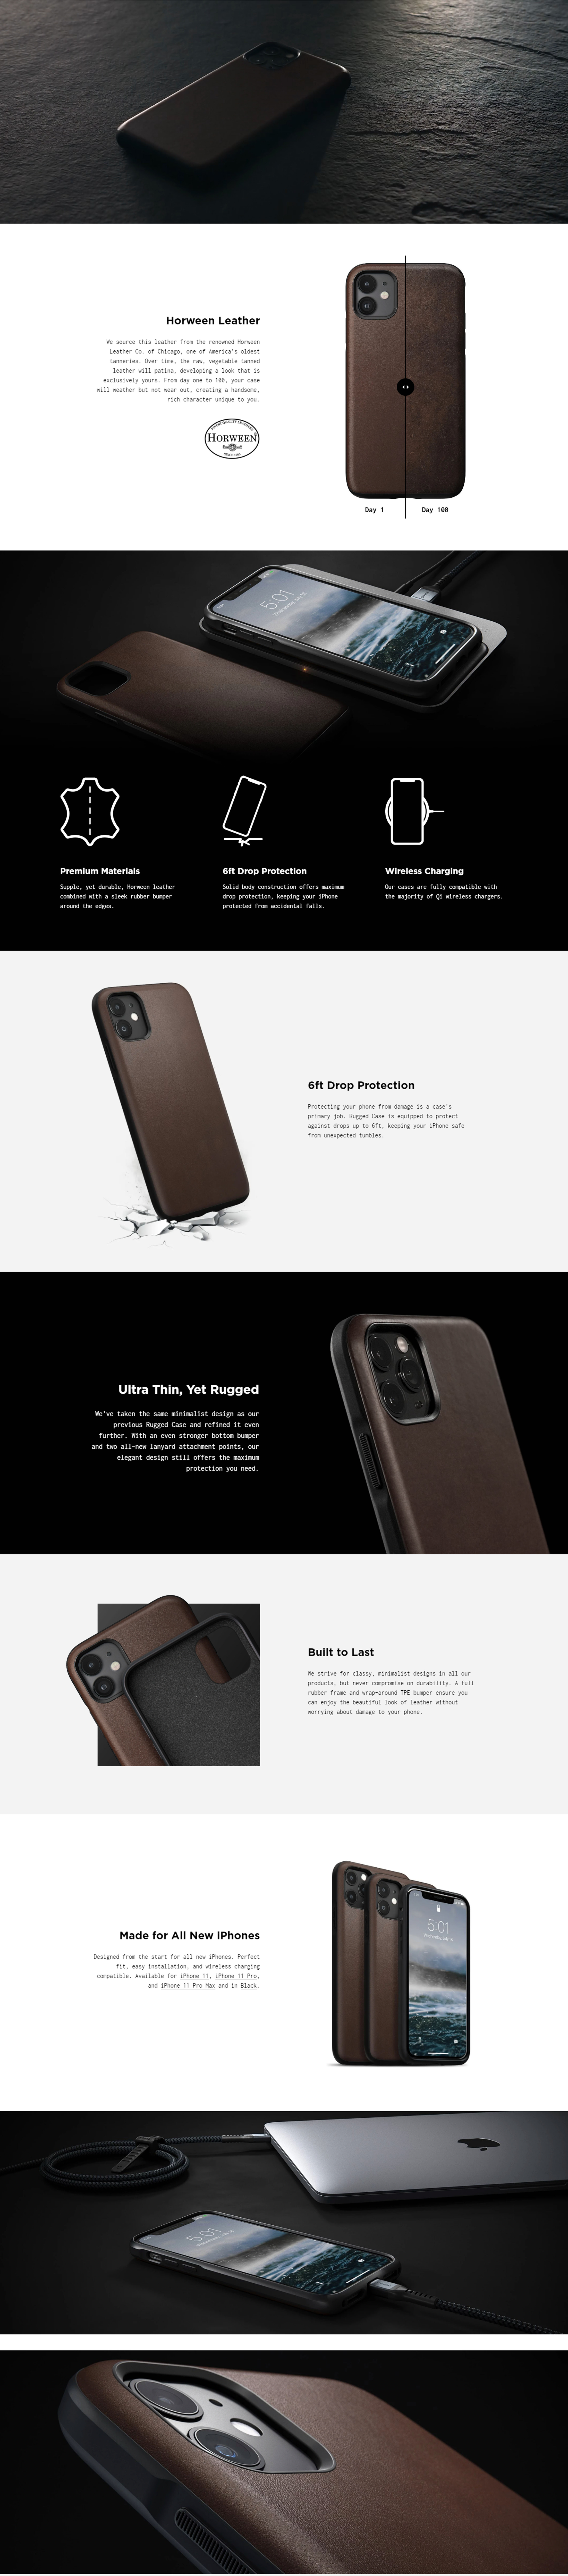 nomad/856500018119/1-des-fx-nomad-rugged-case-iphone-11-rustic-brown-color-856500018119-malaysia-authorised-retailer